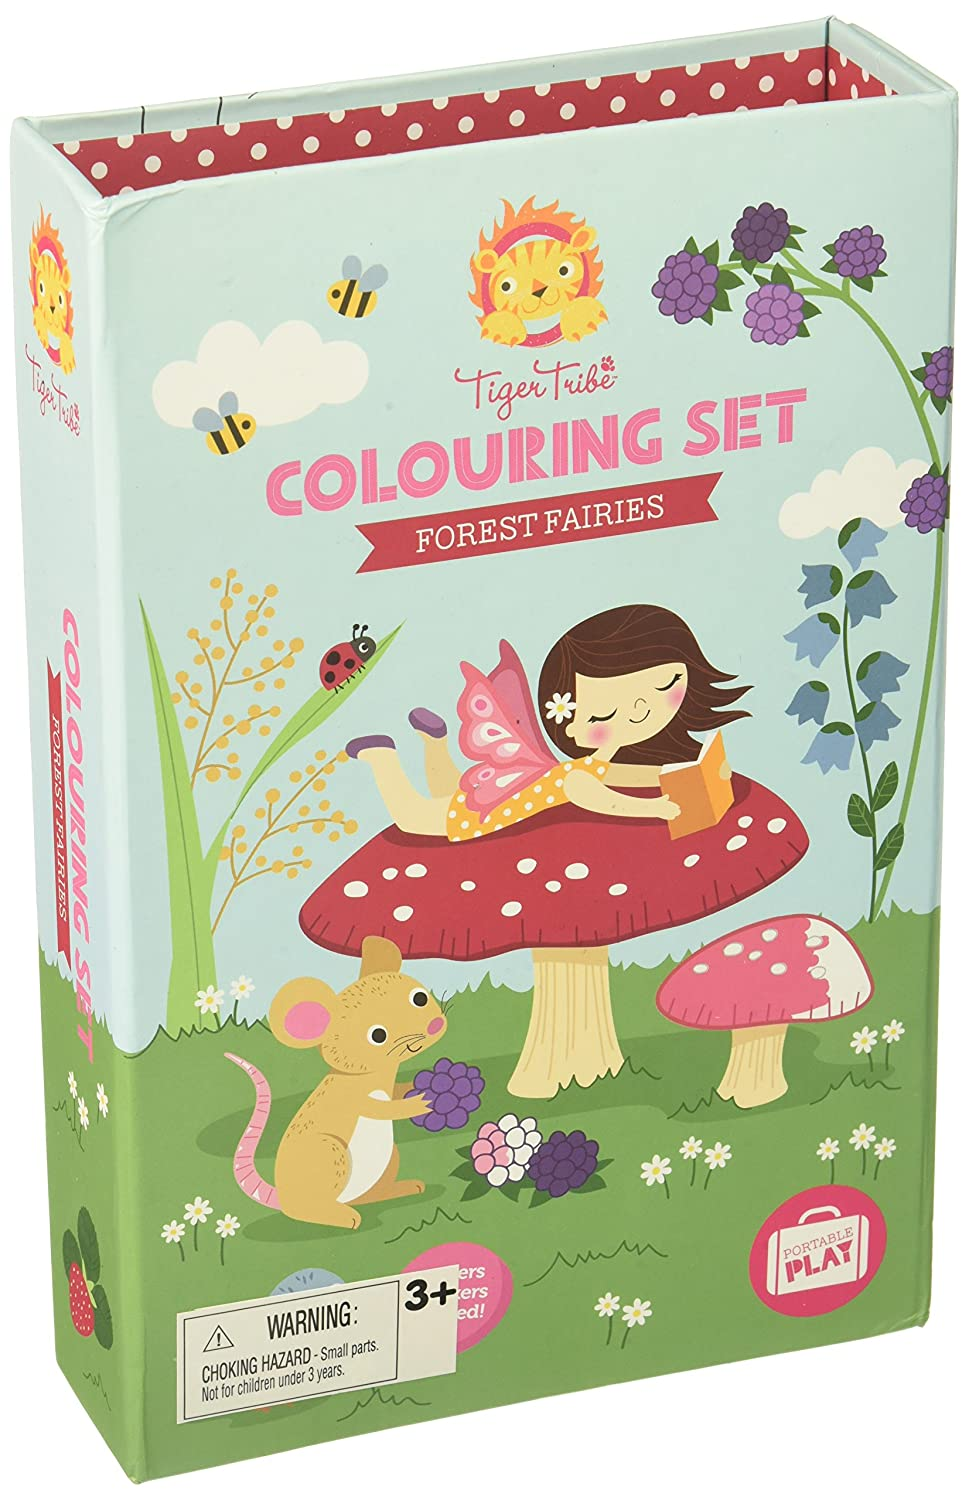 (Forest Fairies) - Tiger Tribe Colouring Set, Forest Fairies Arts and Crafts Kit 60215